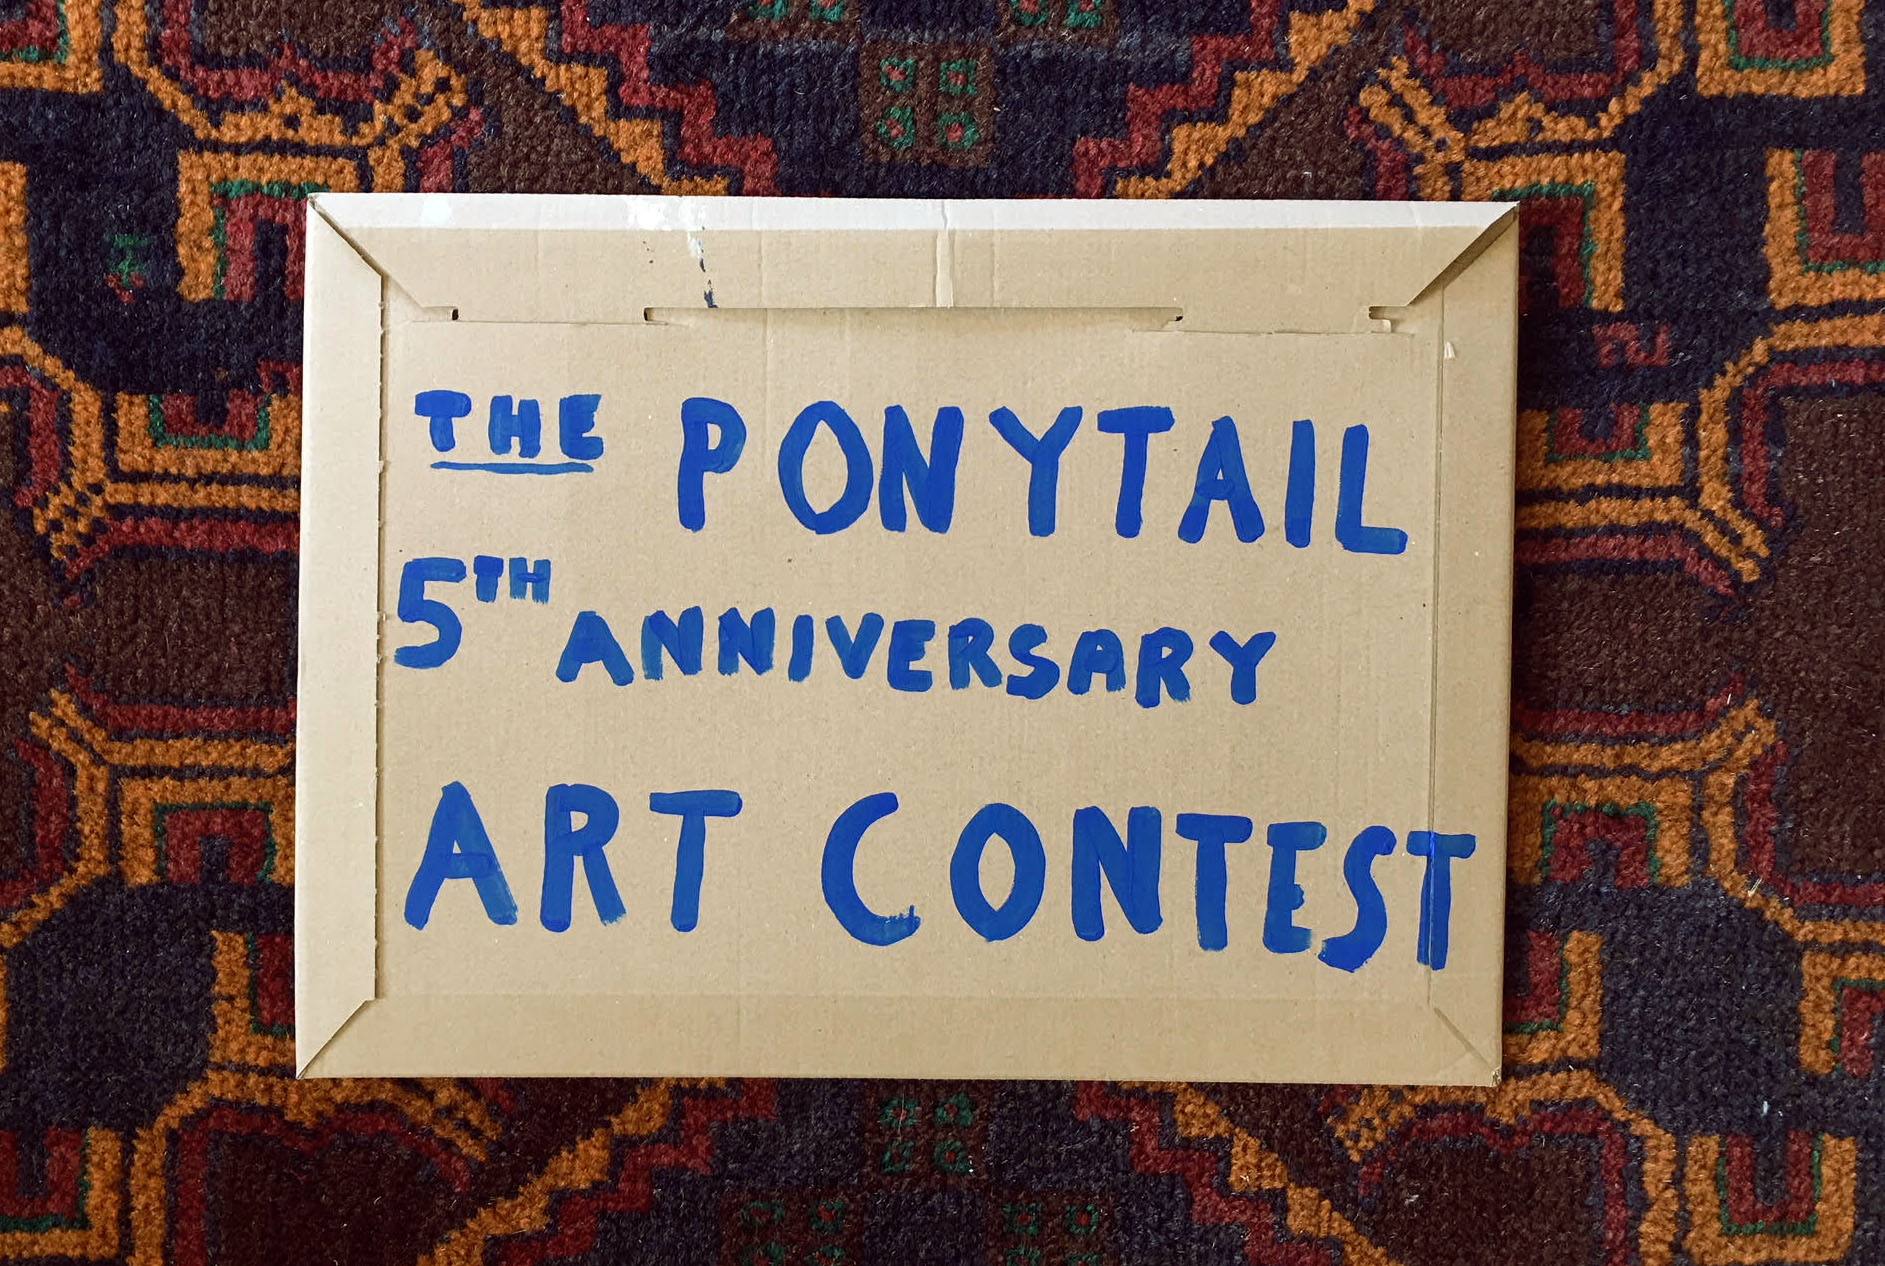 PONYTAIL 5TH ANNIVERSARY ART CONTEST